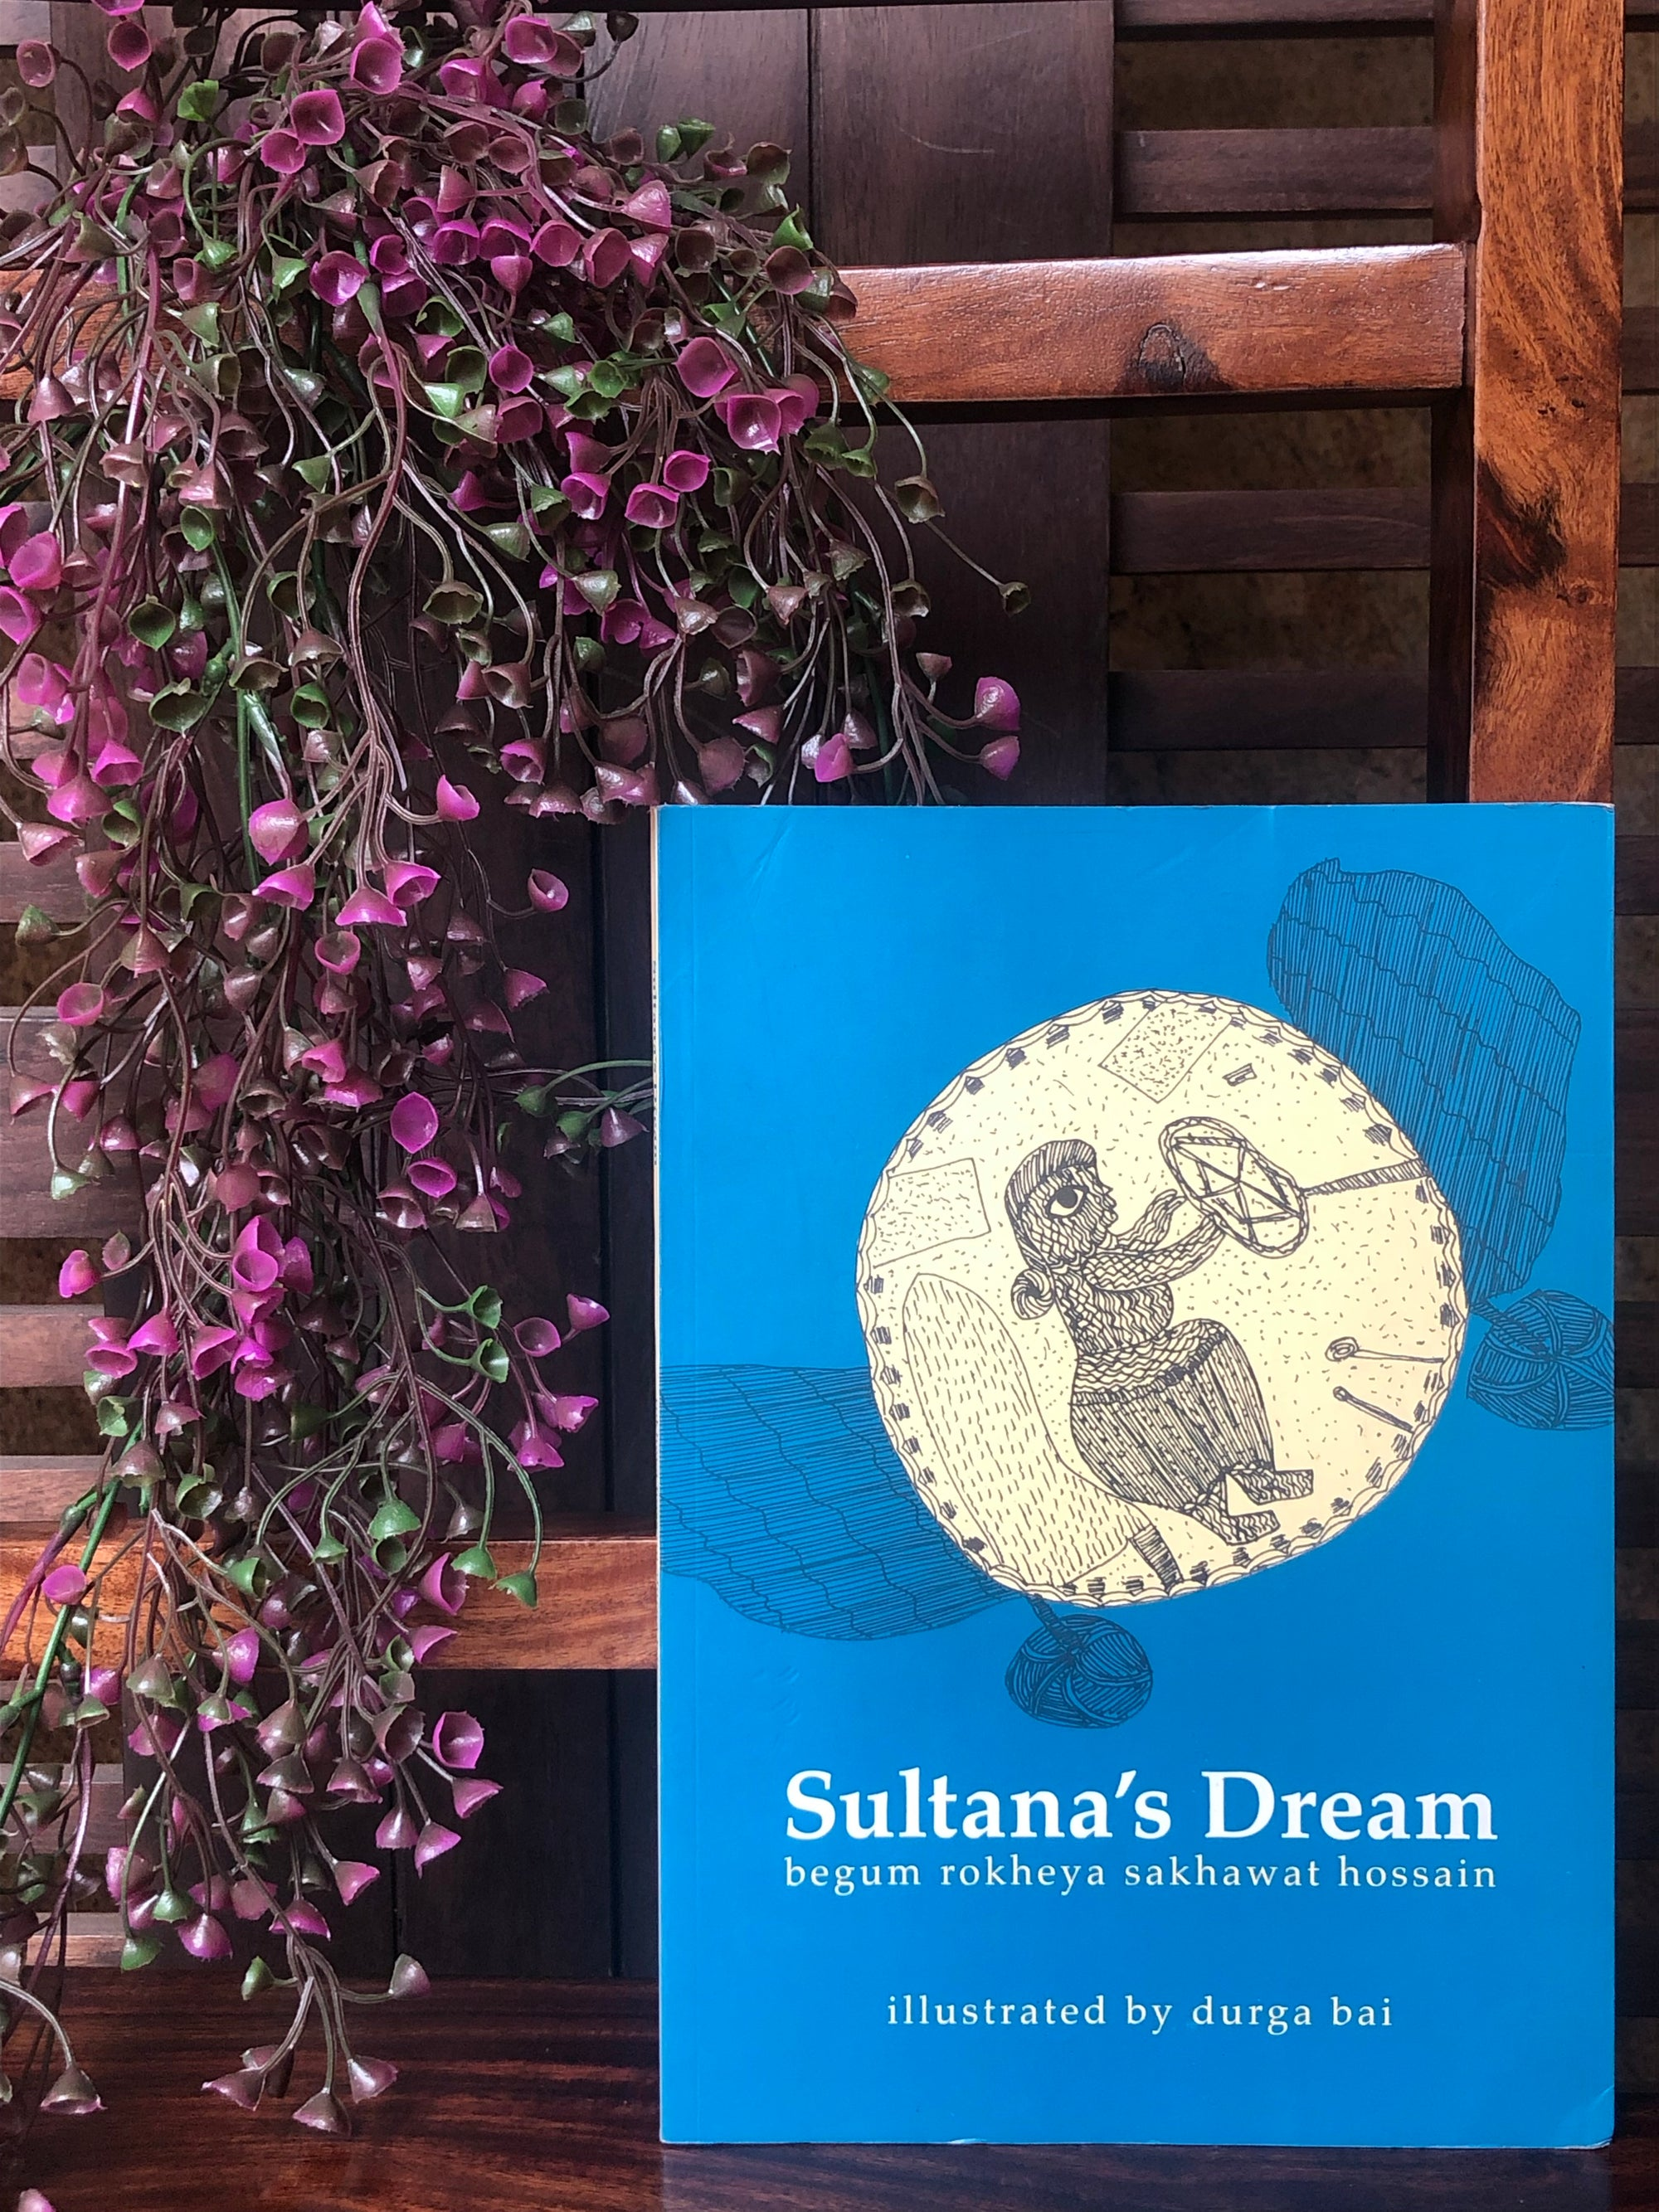 book bliss - sultana's dream